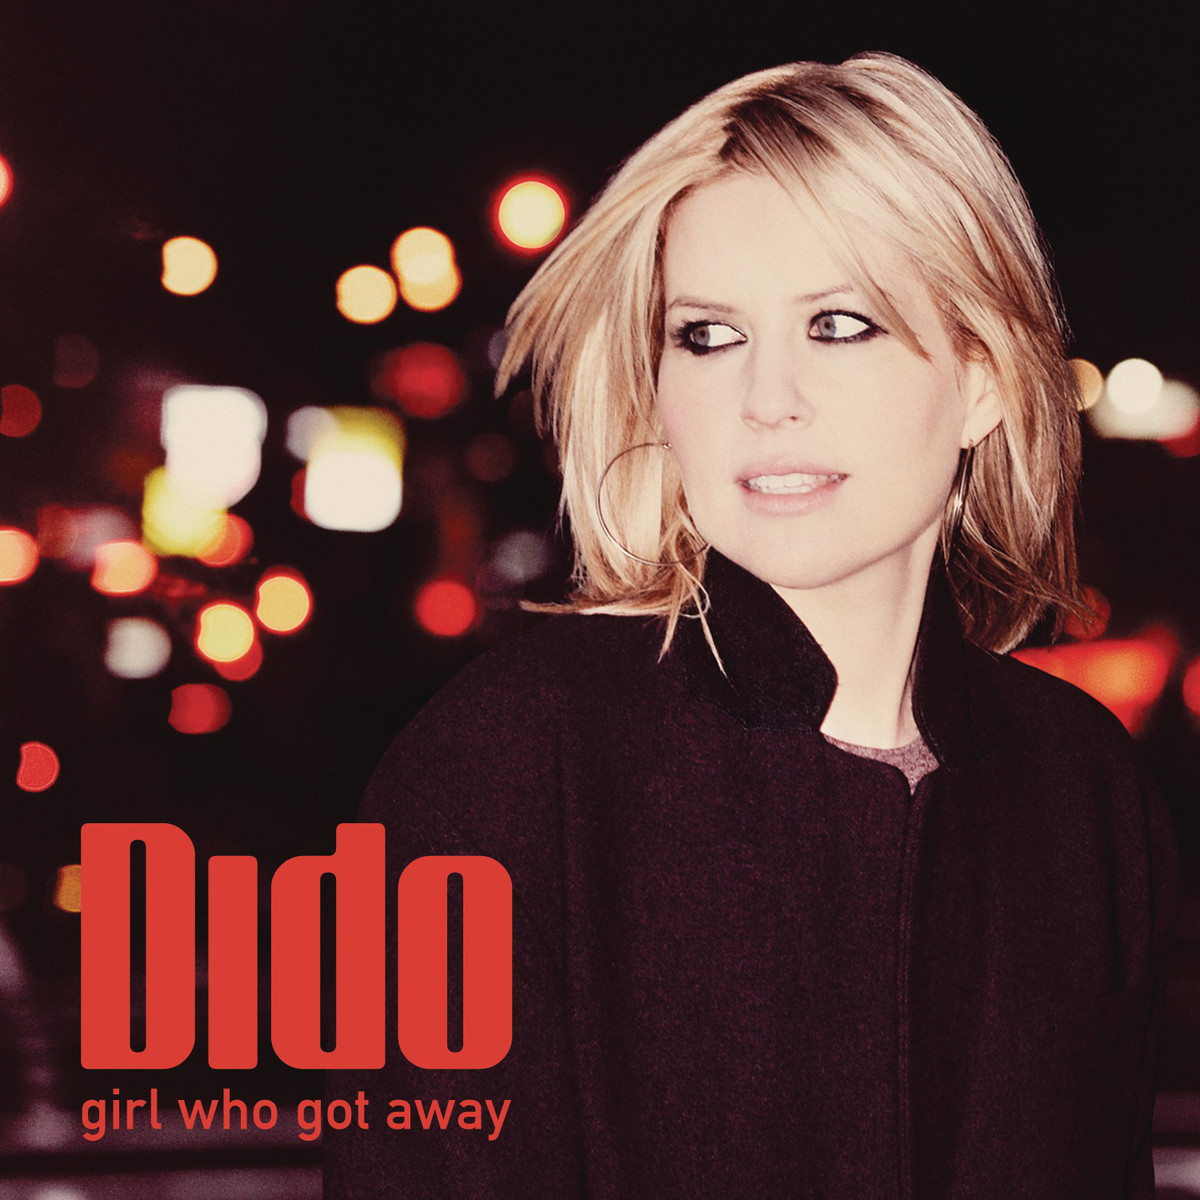 Dido-Girl-Who-Got-Away-Deluxe-Version-2013-1200x1200